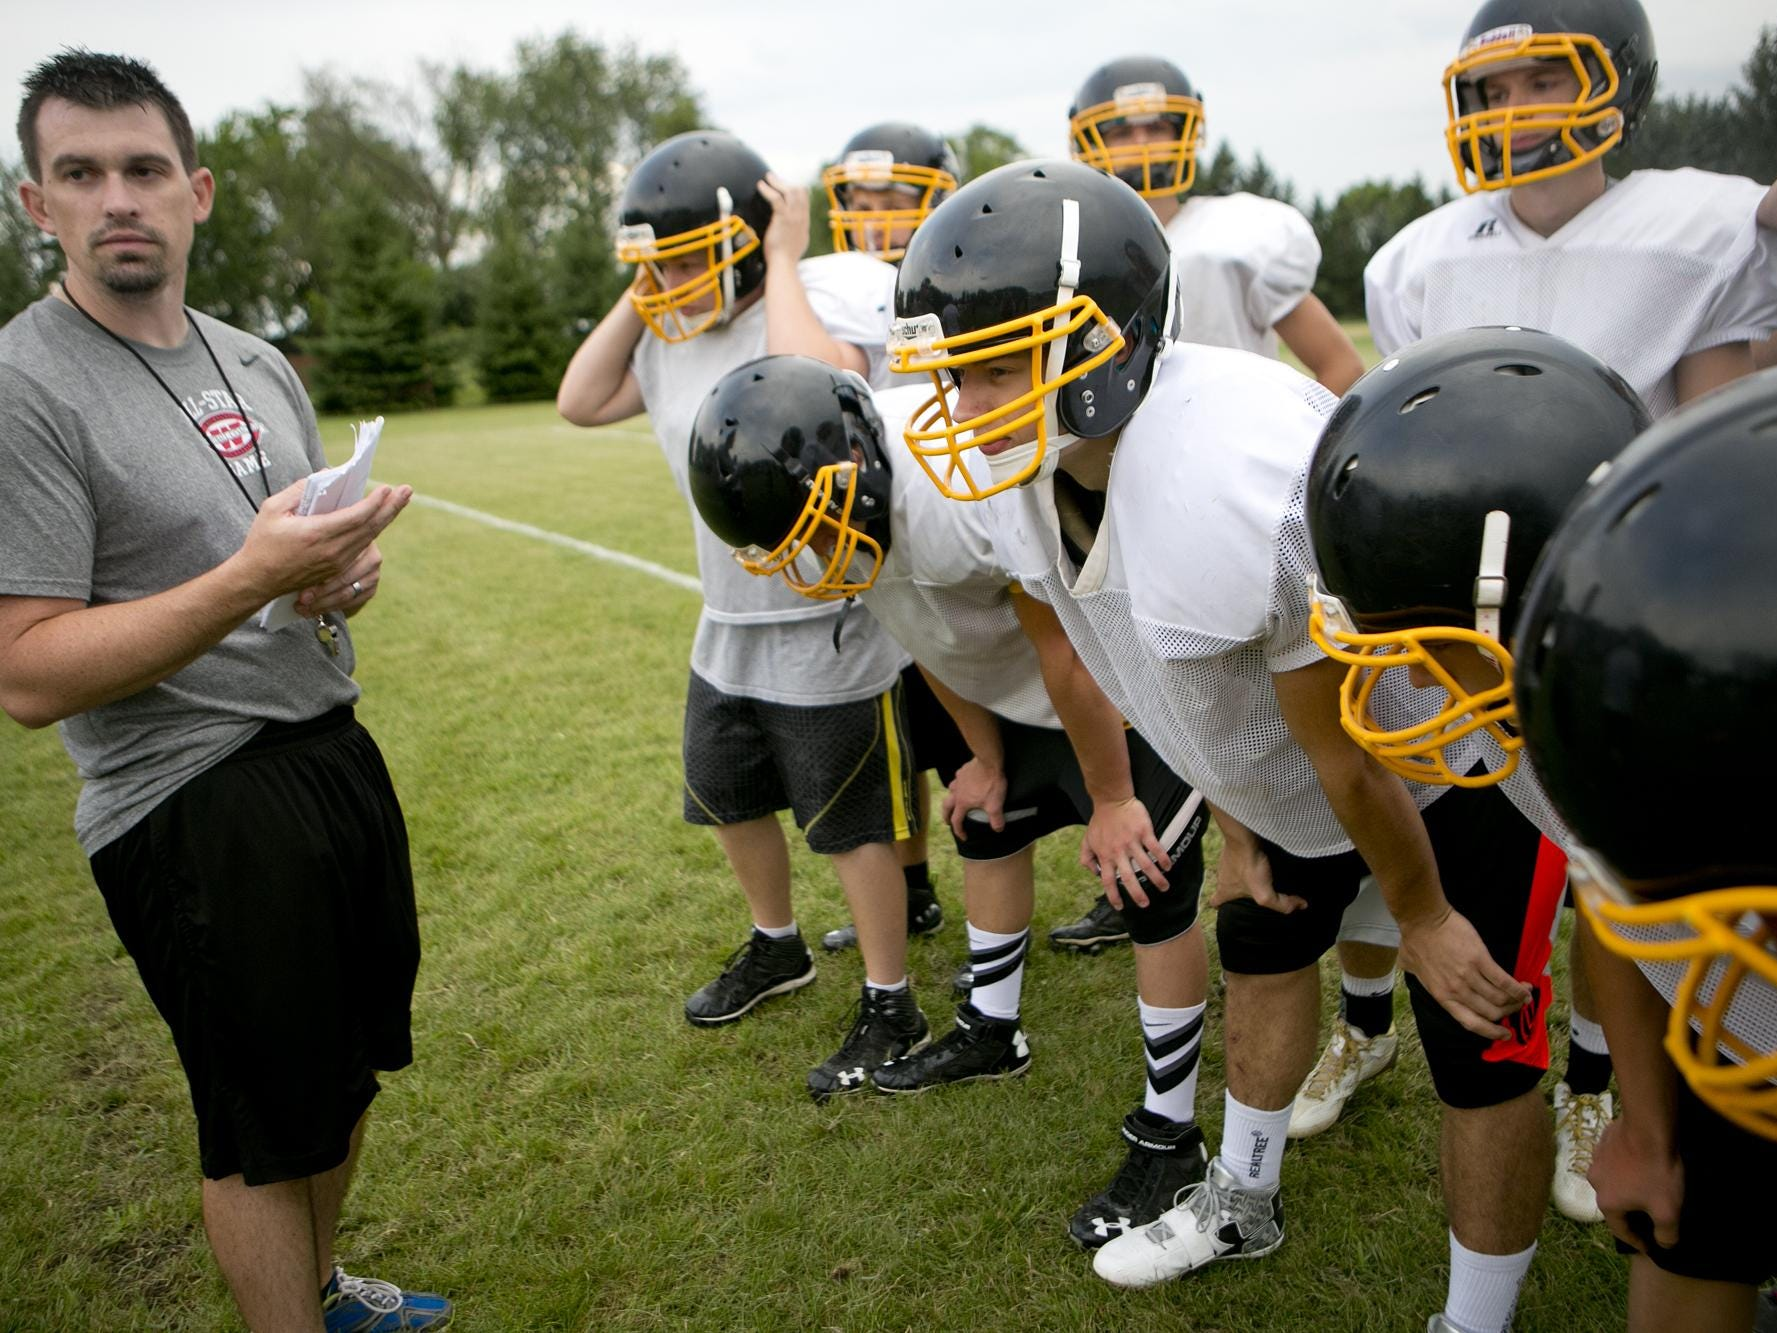 Head coach Adam Spindler addresses the huddle before they run a play at Rosholt football practice, Aug. 6.